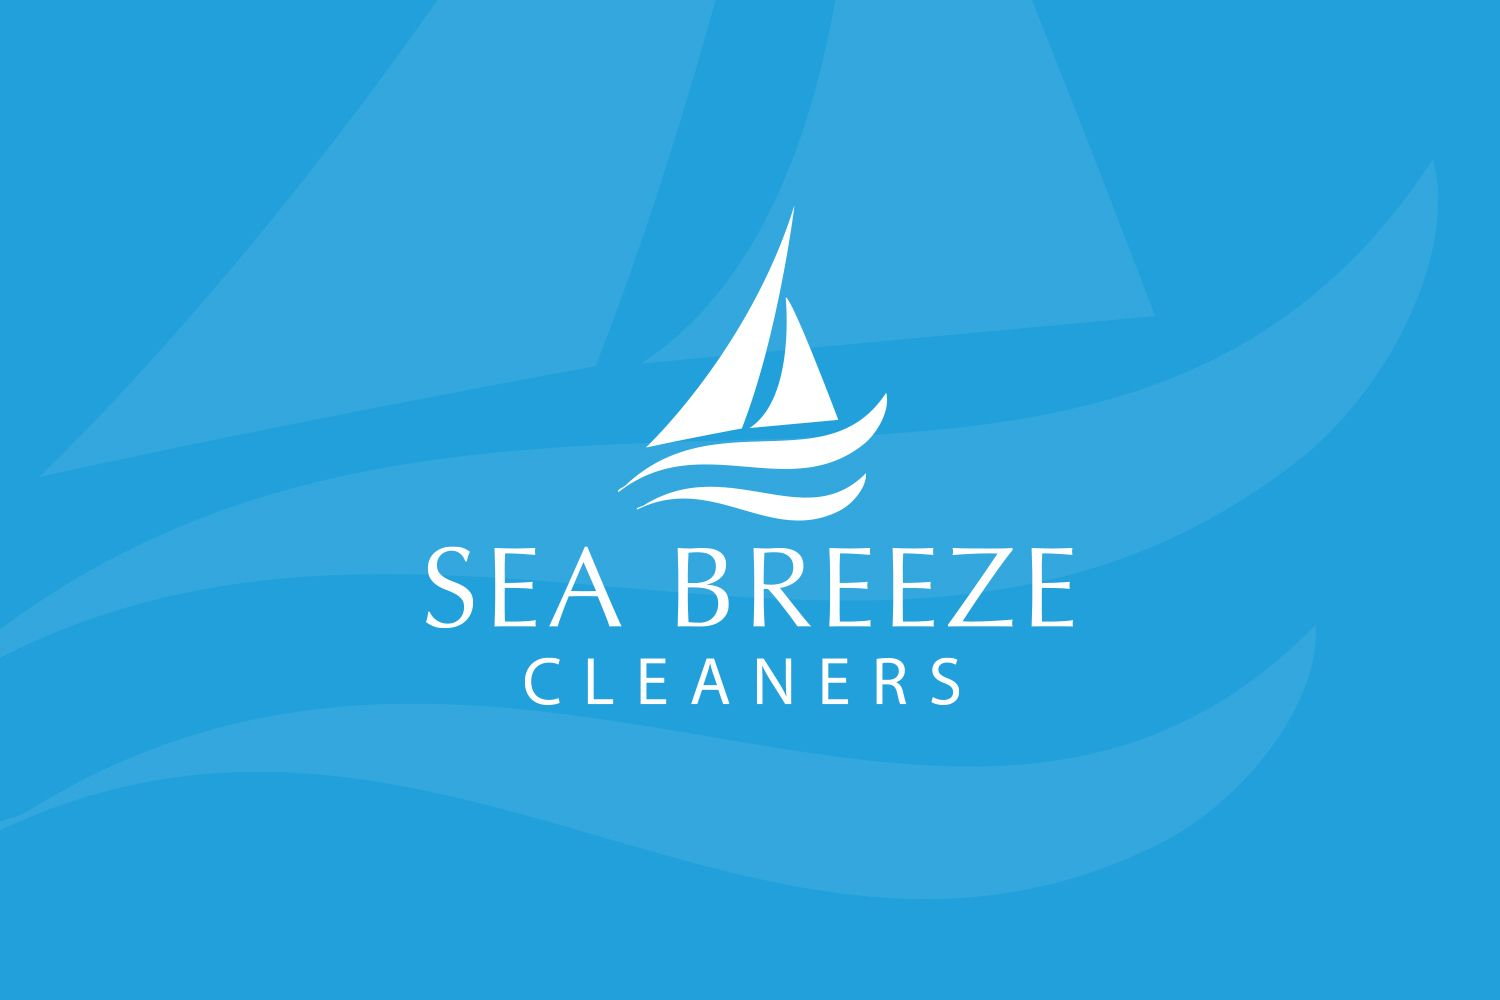 Sea Breeze Cleaners